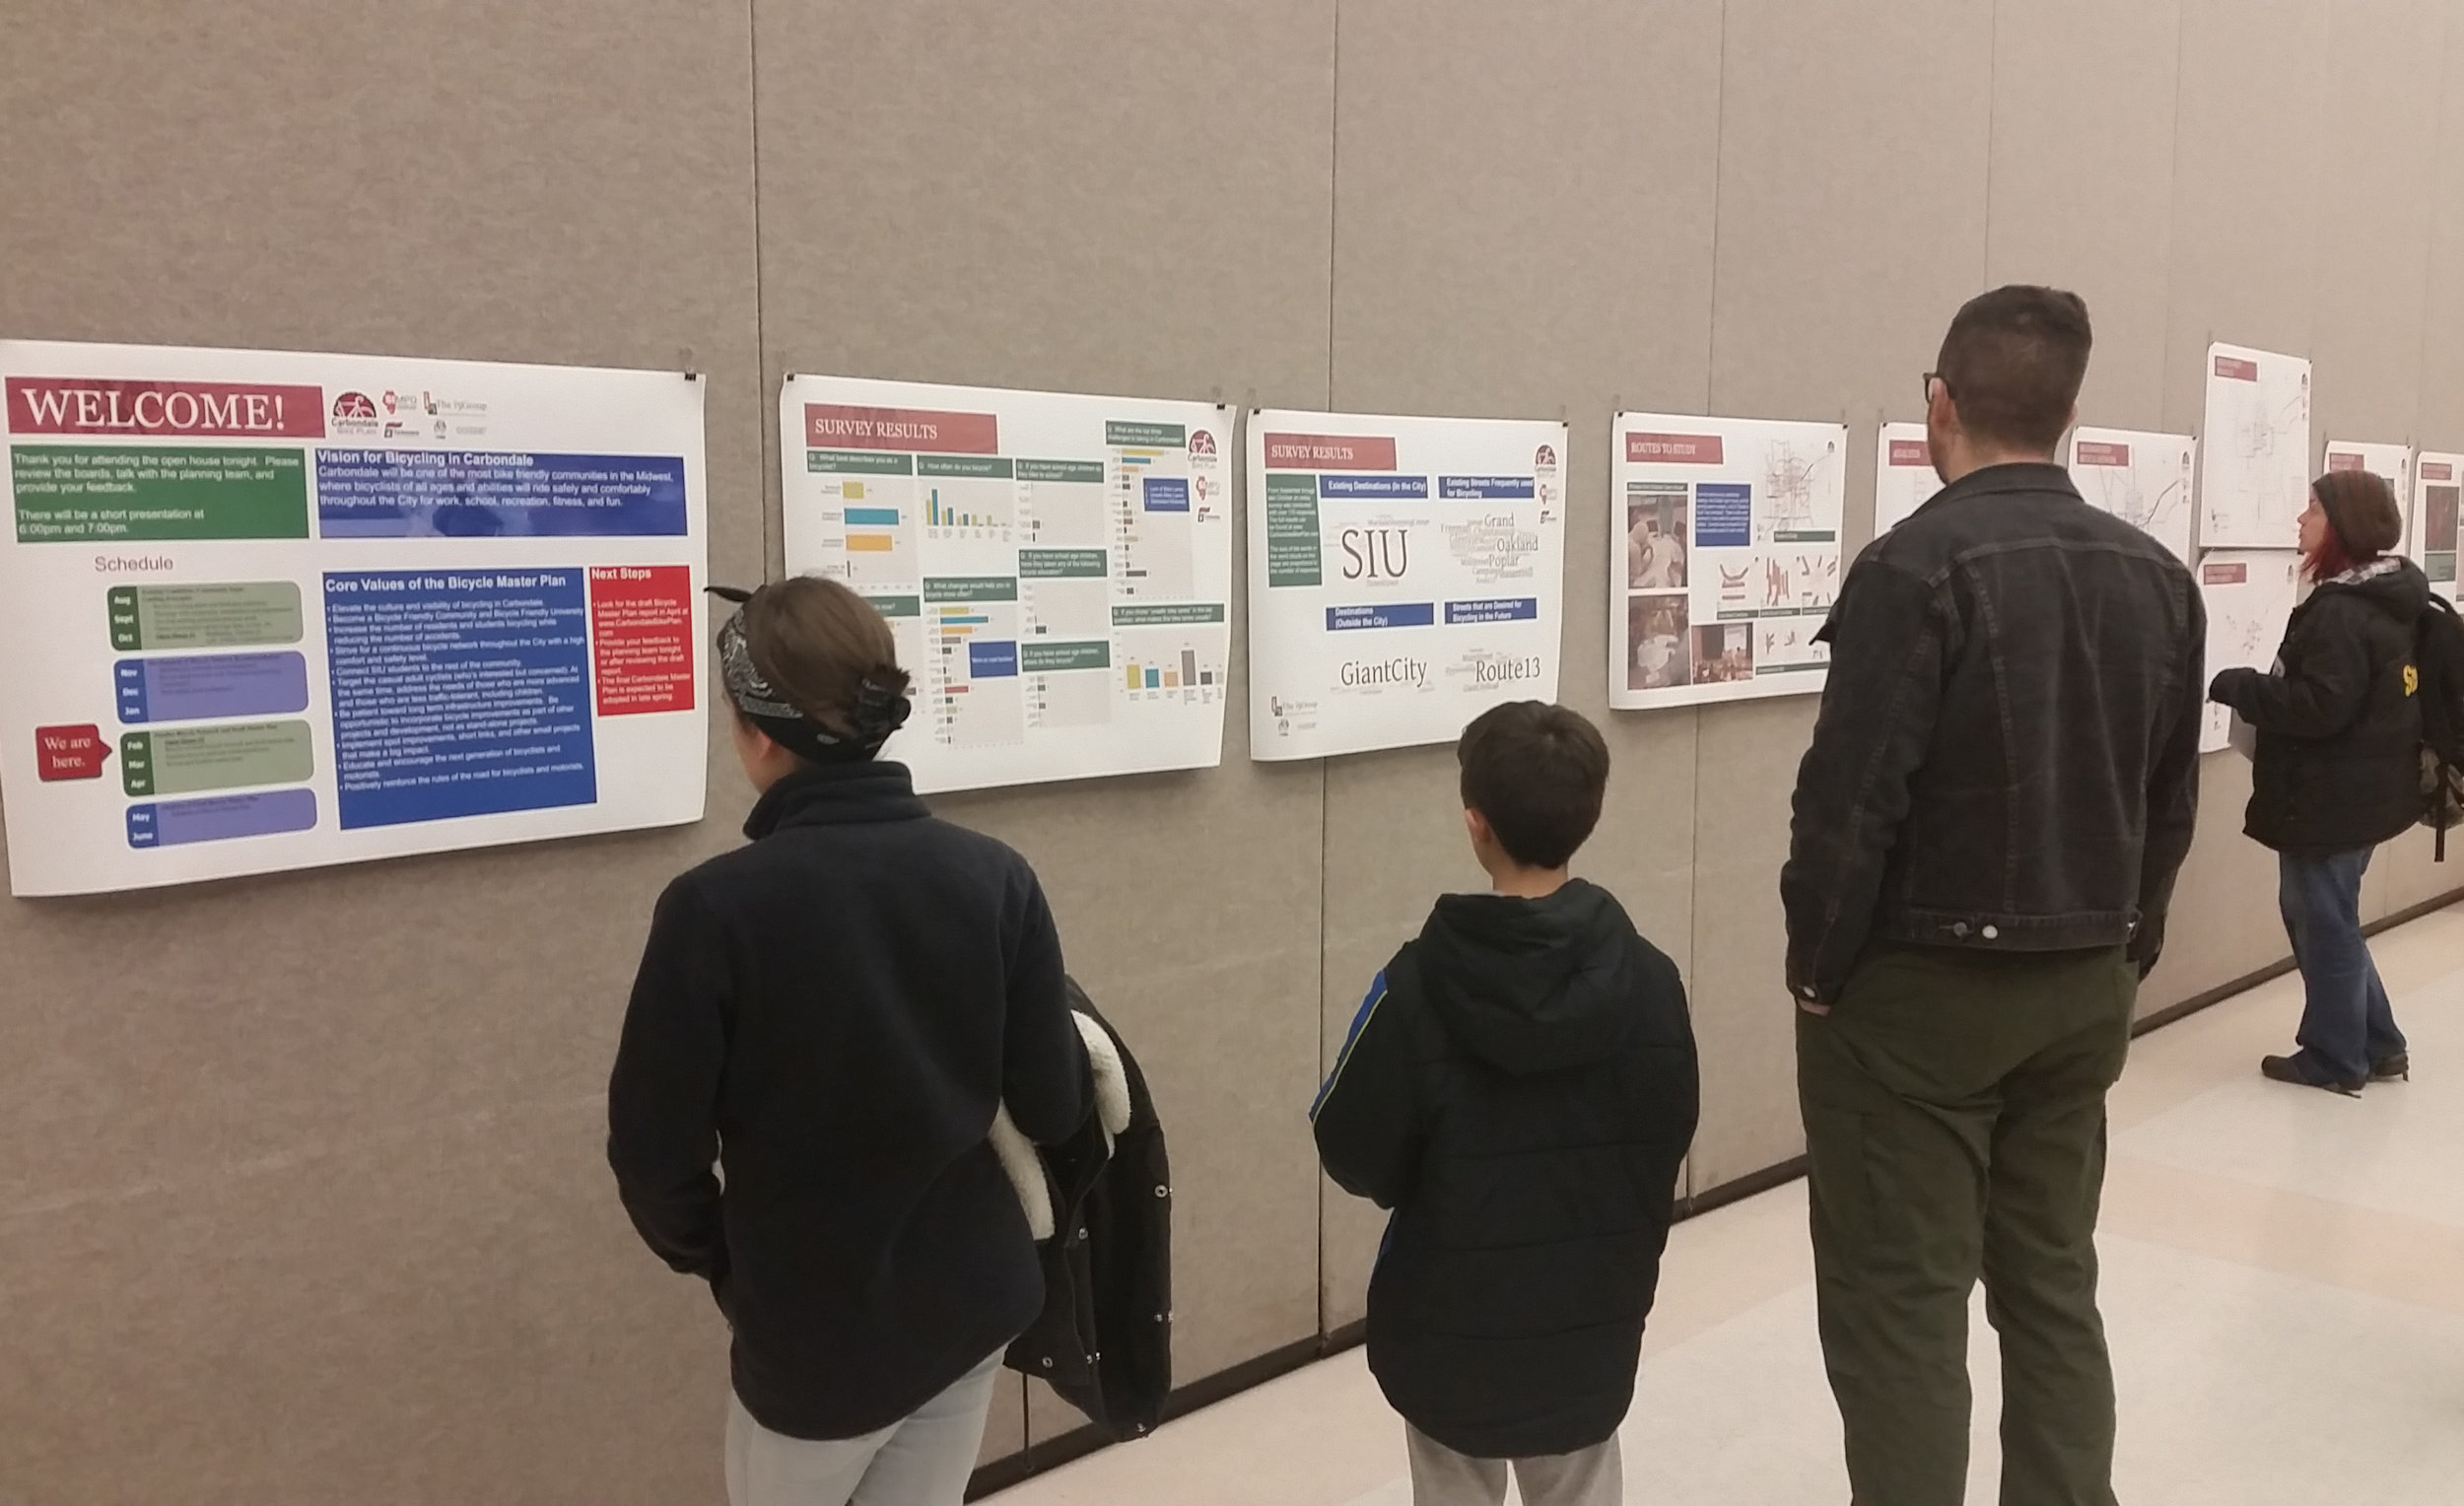 Attendees at the February 17, 2016 Open House review the draft recommendations.